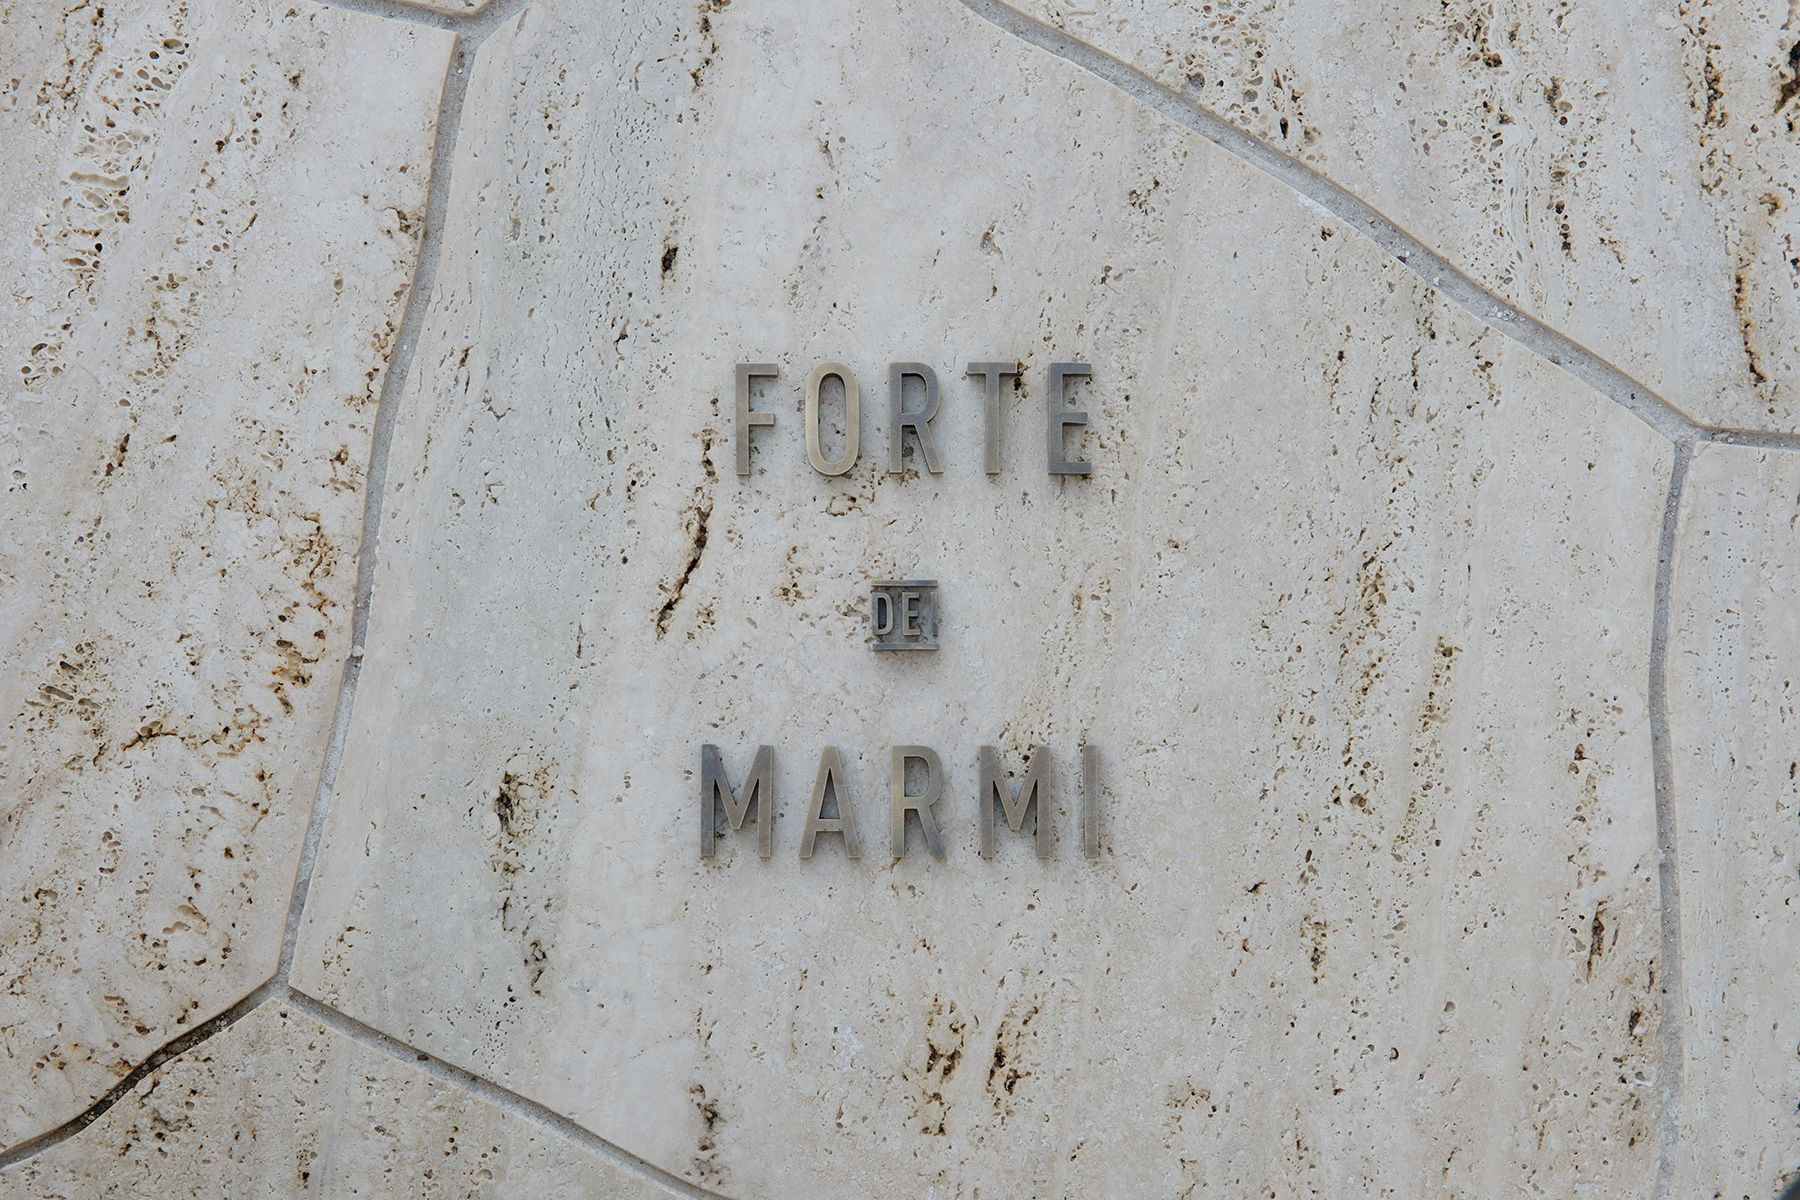 Forte_Dei_Marmi___Photo_by_Karen_Fuchs__13_.jpg